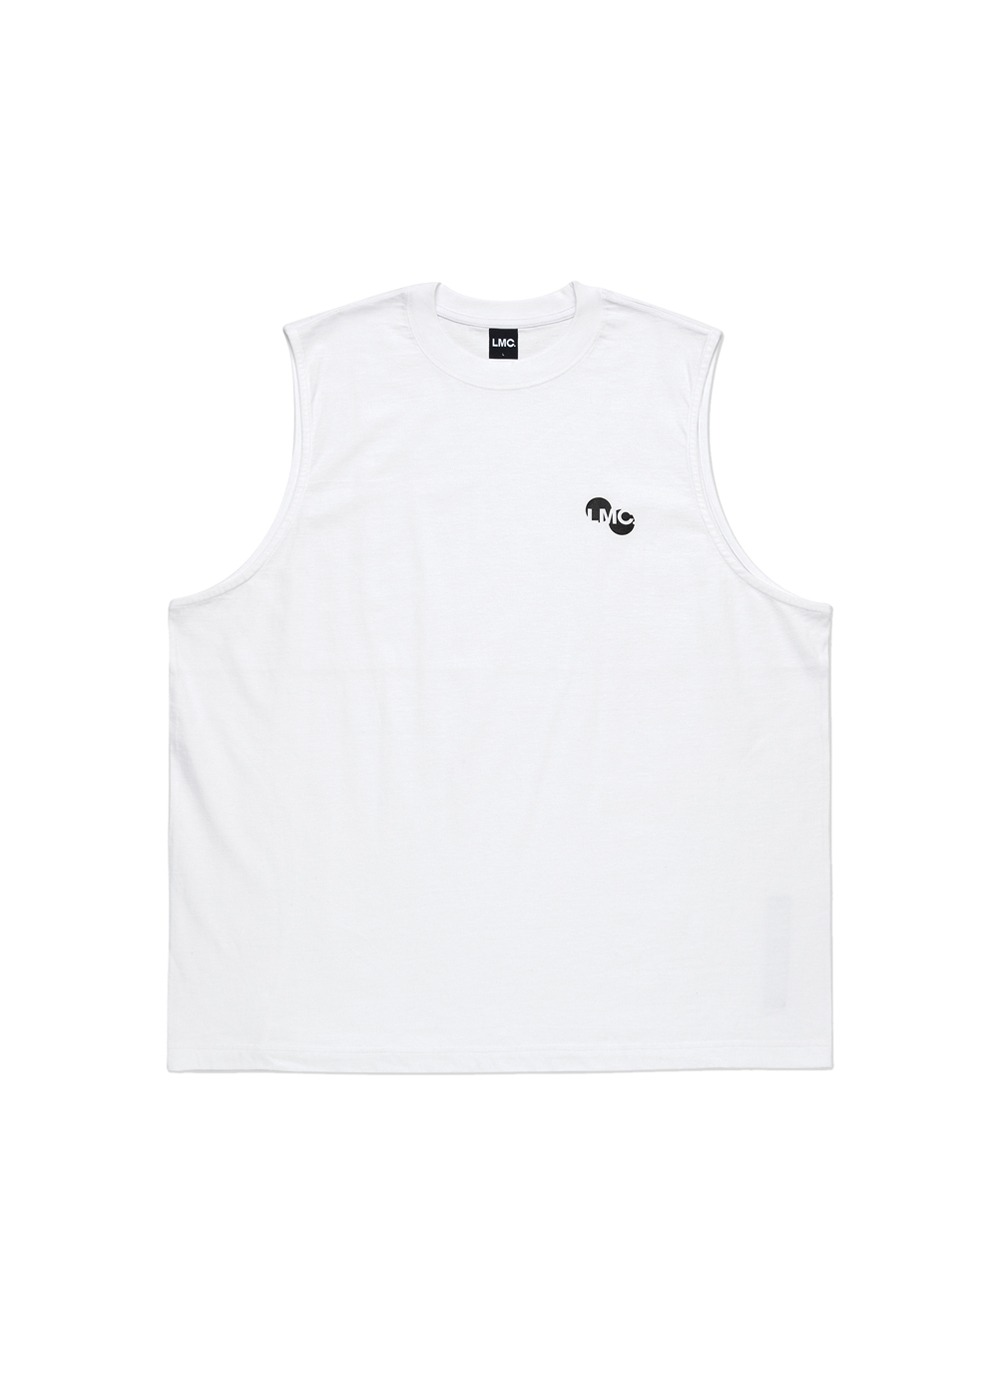 LMC CIRCLE SLEEVELESS white